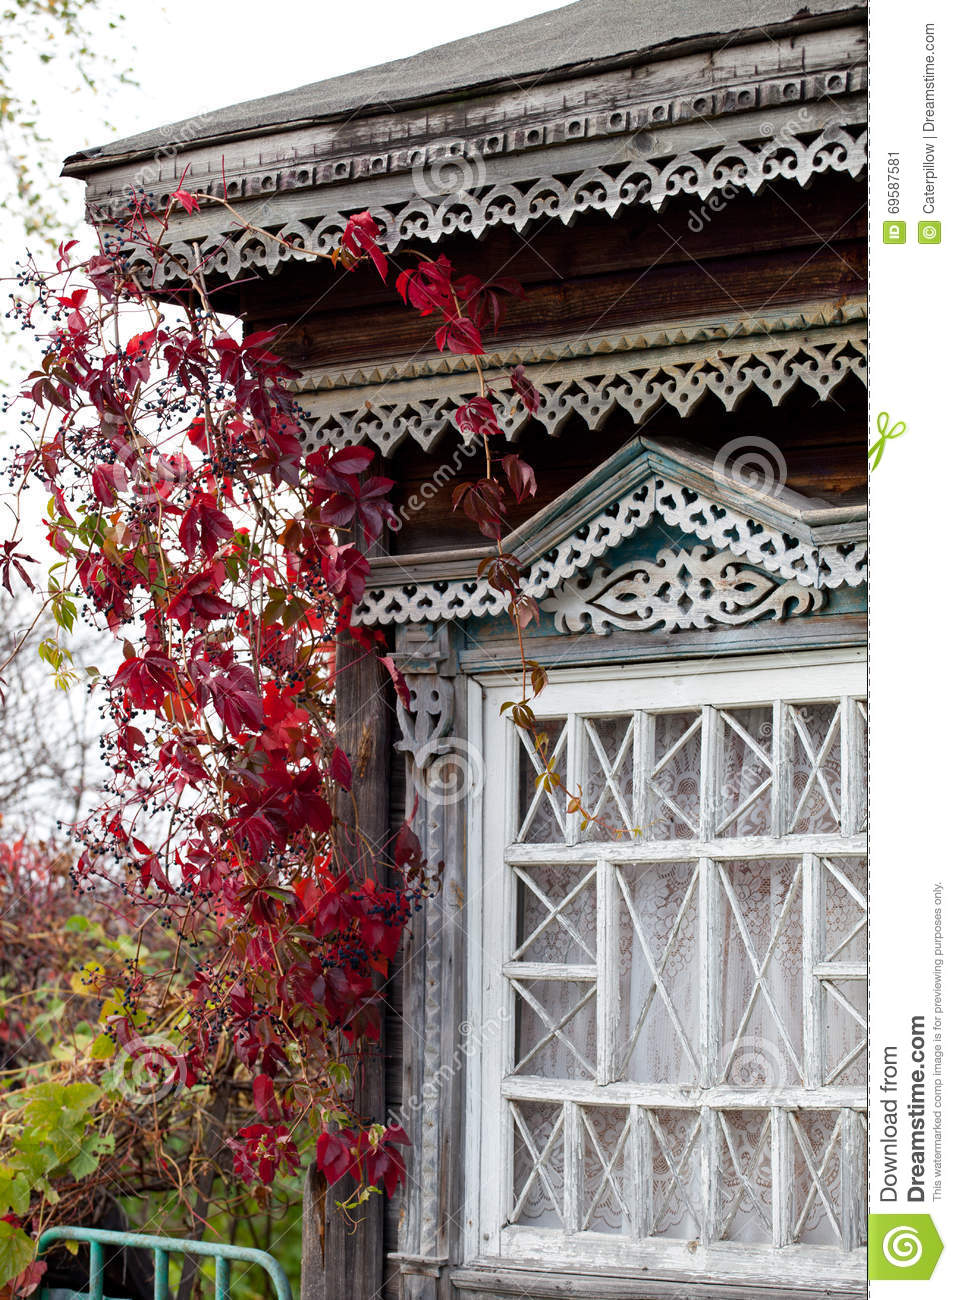 Rural house window twined with autumn virginia creeper (Parthenocissus quinquefolia)